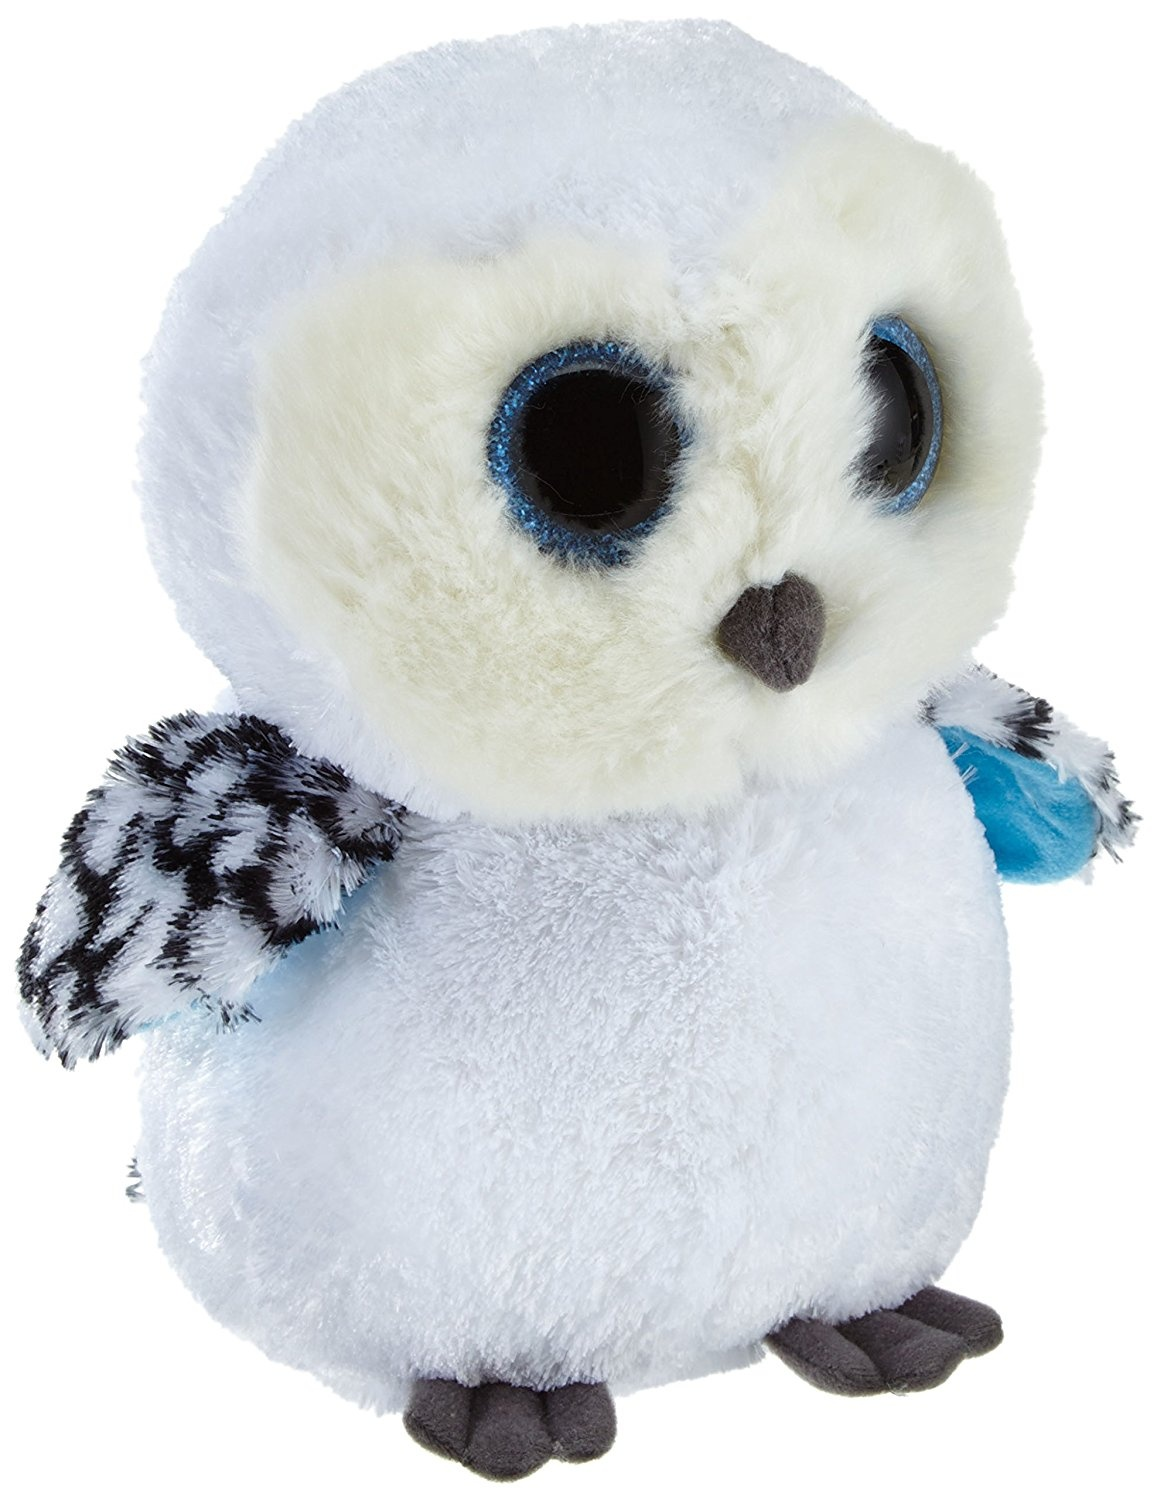 Ty Beanie Boos Owl Toys  Buy Online from Fishpond.co.nz 2029e44285a5